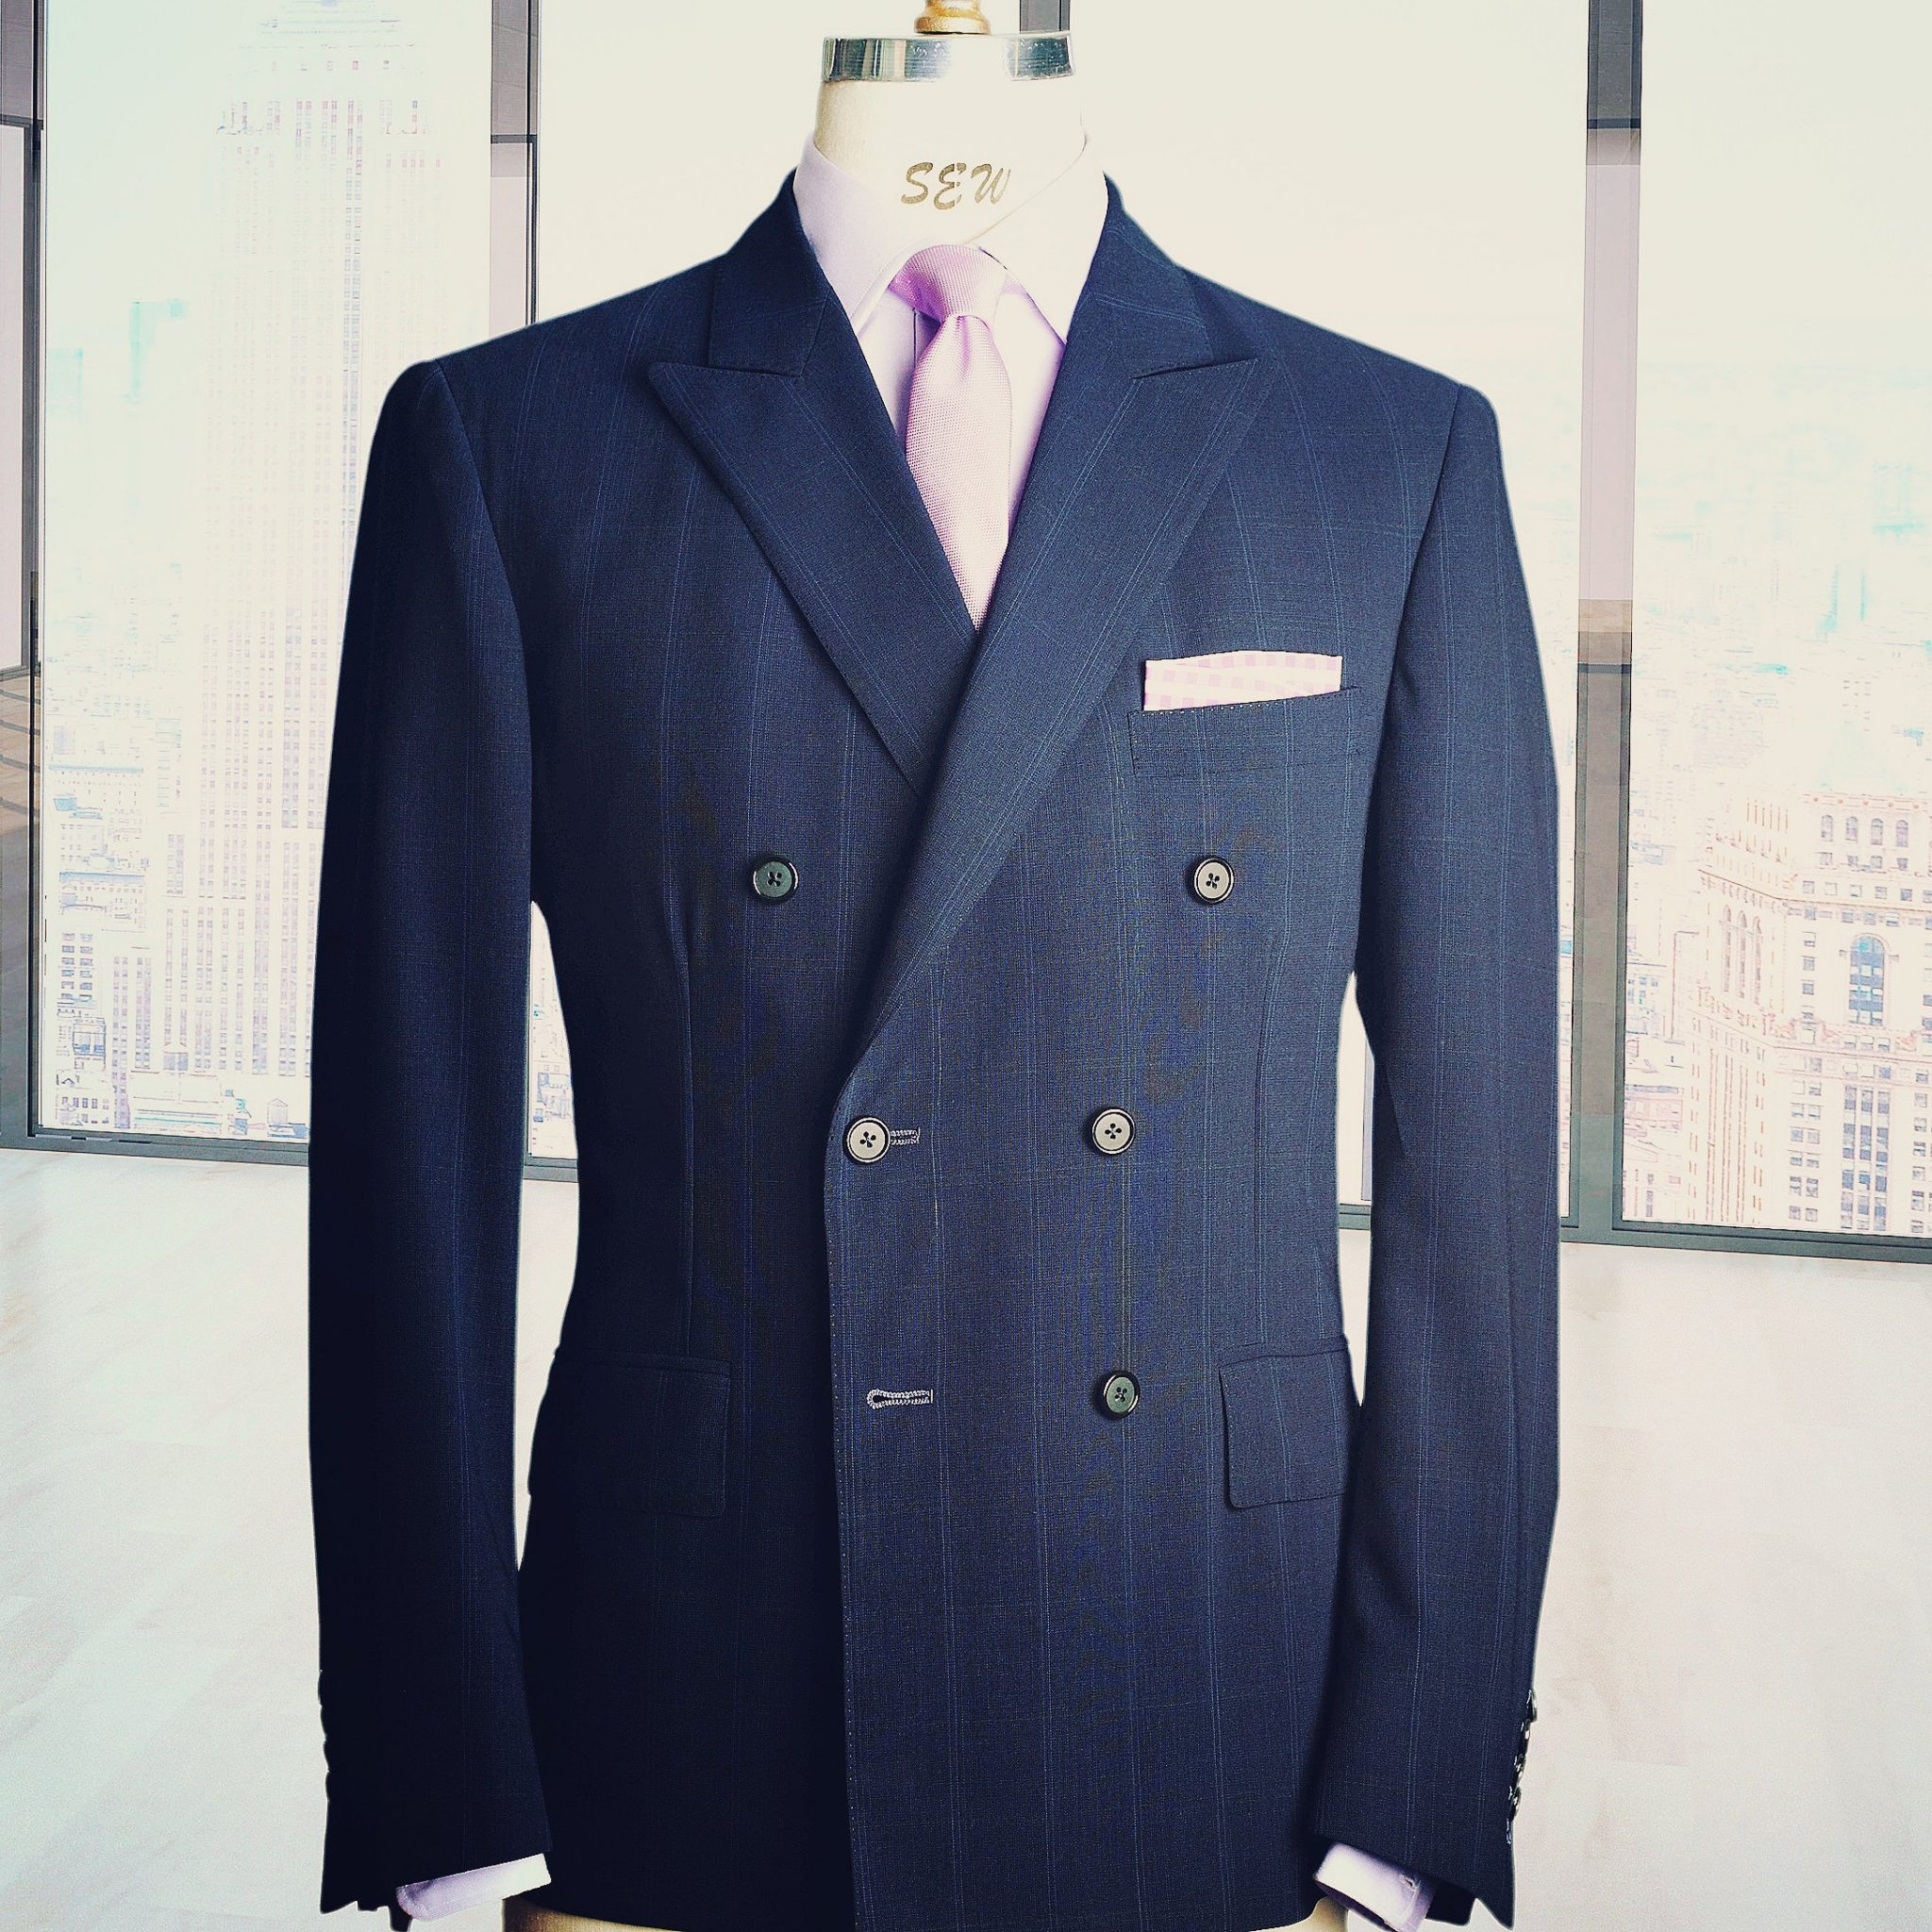 custom bespoke Suits of nyc by manhattans most experienced tailor